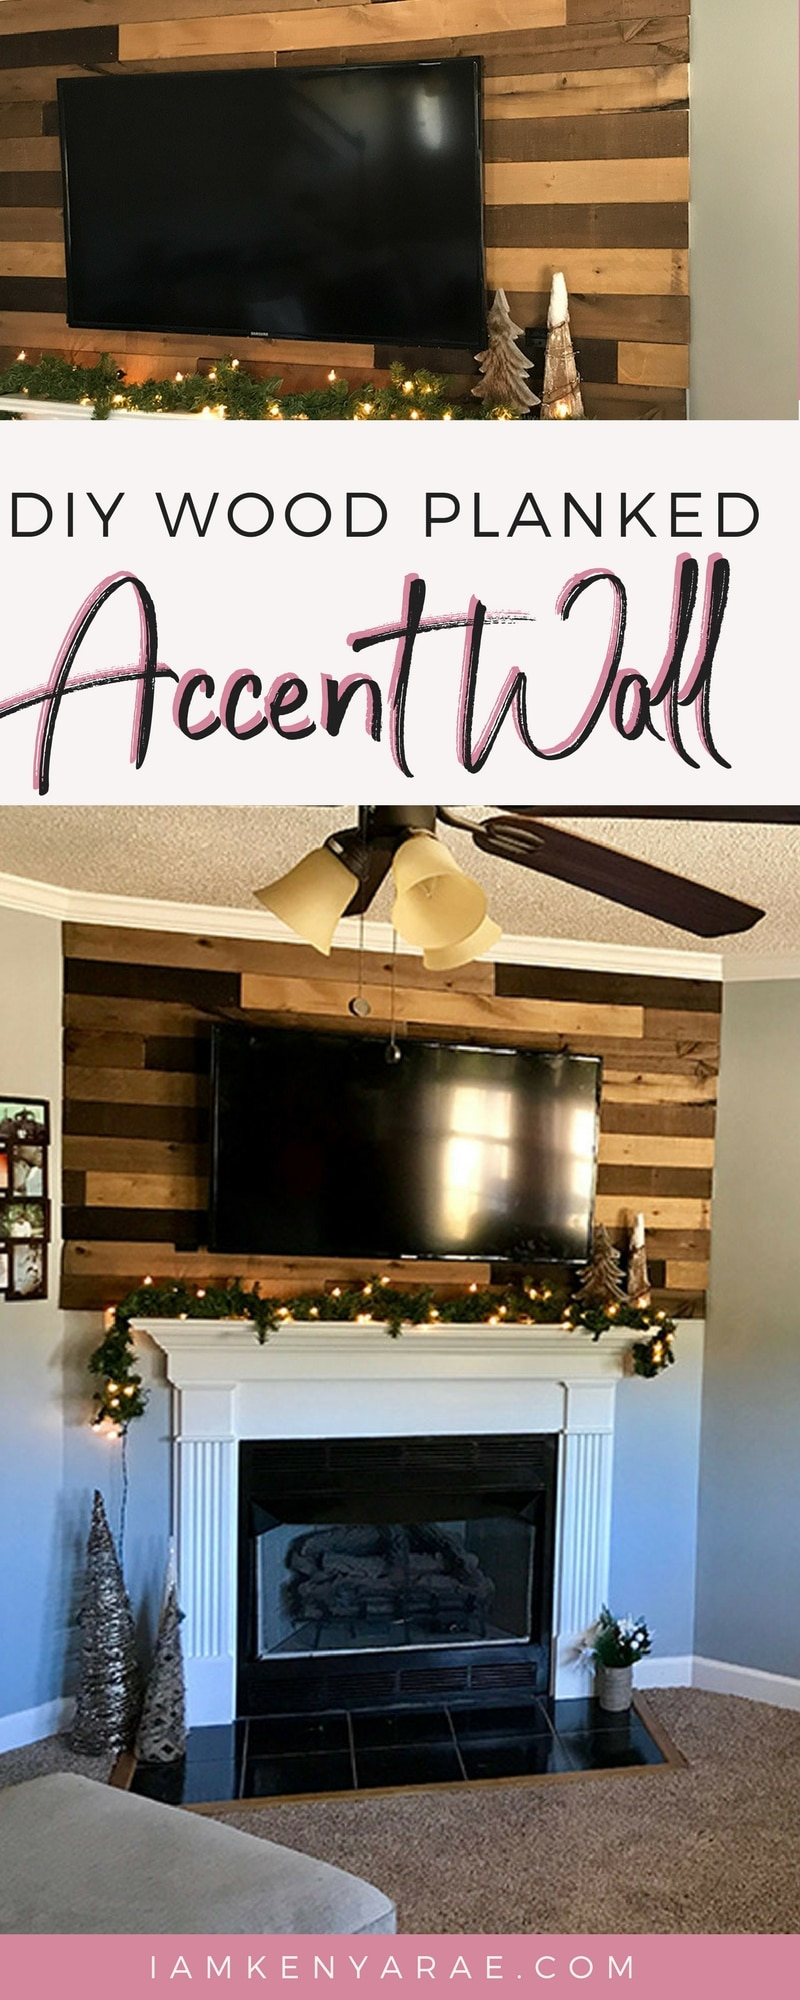 DIY Wood Planked Accent Wall A wood planked accent wall using @weaberlumber above the fireplace mantle that adds character and modern farmhouse mixed with cabin charm feeling.